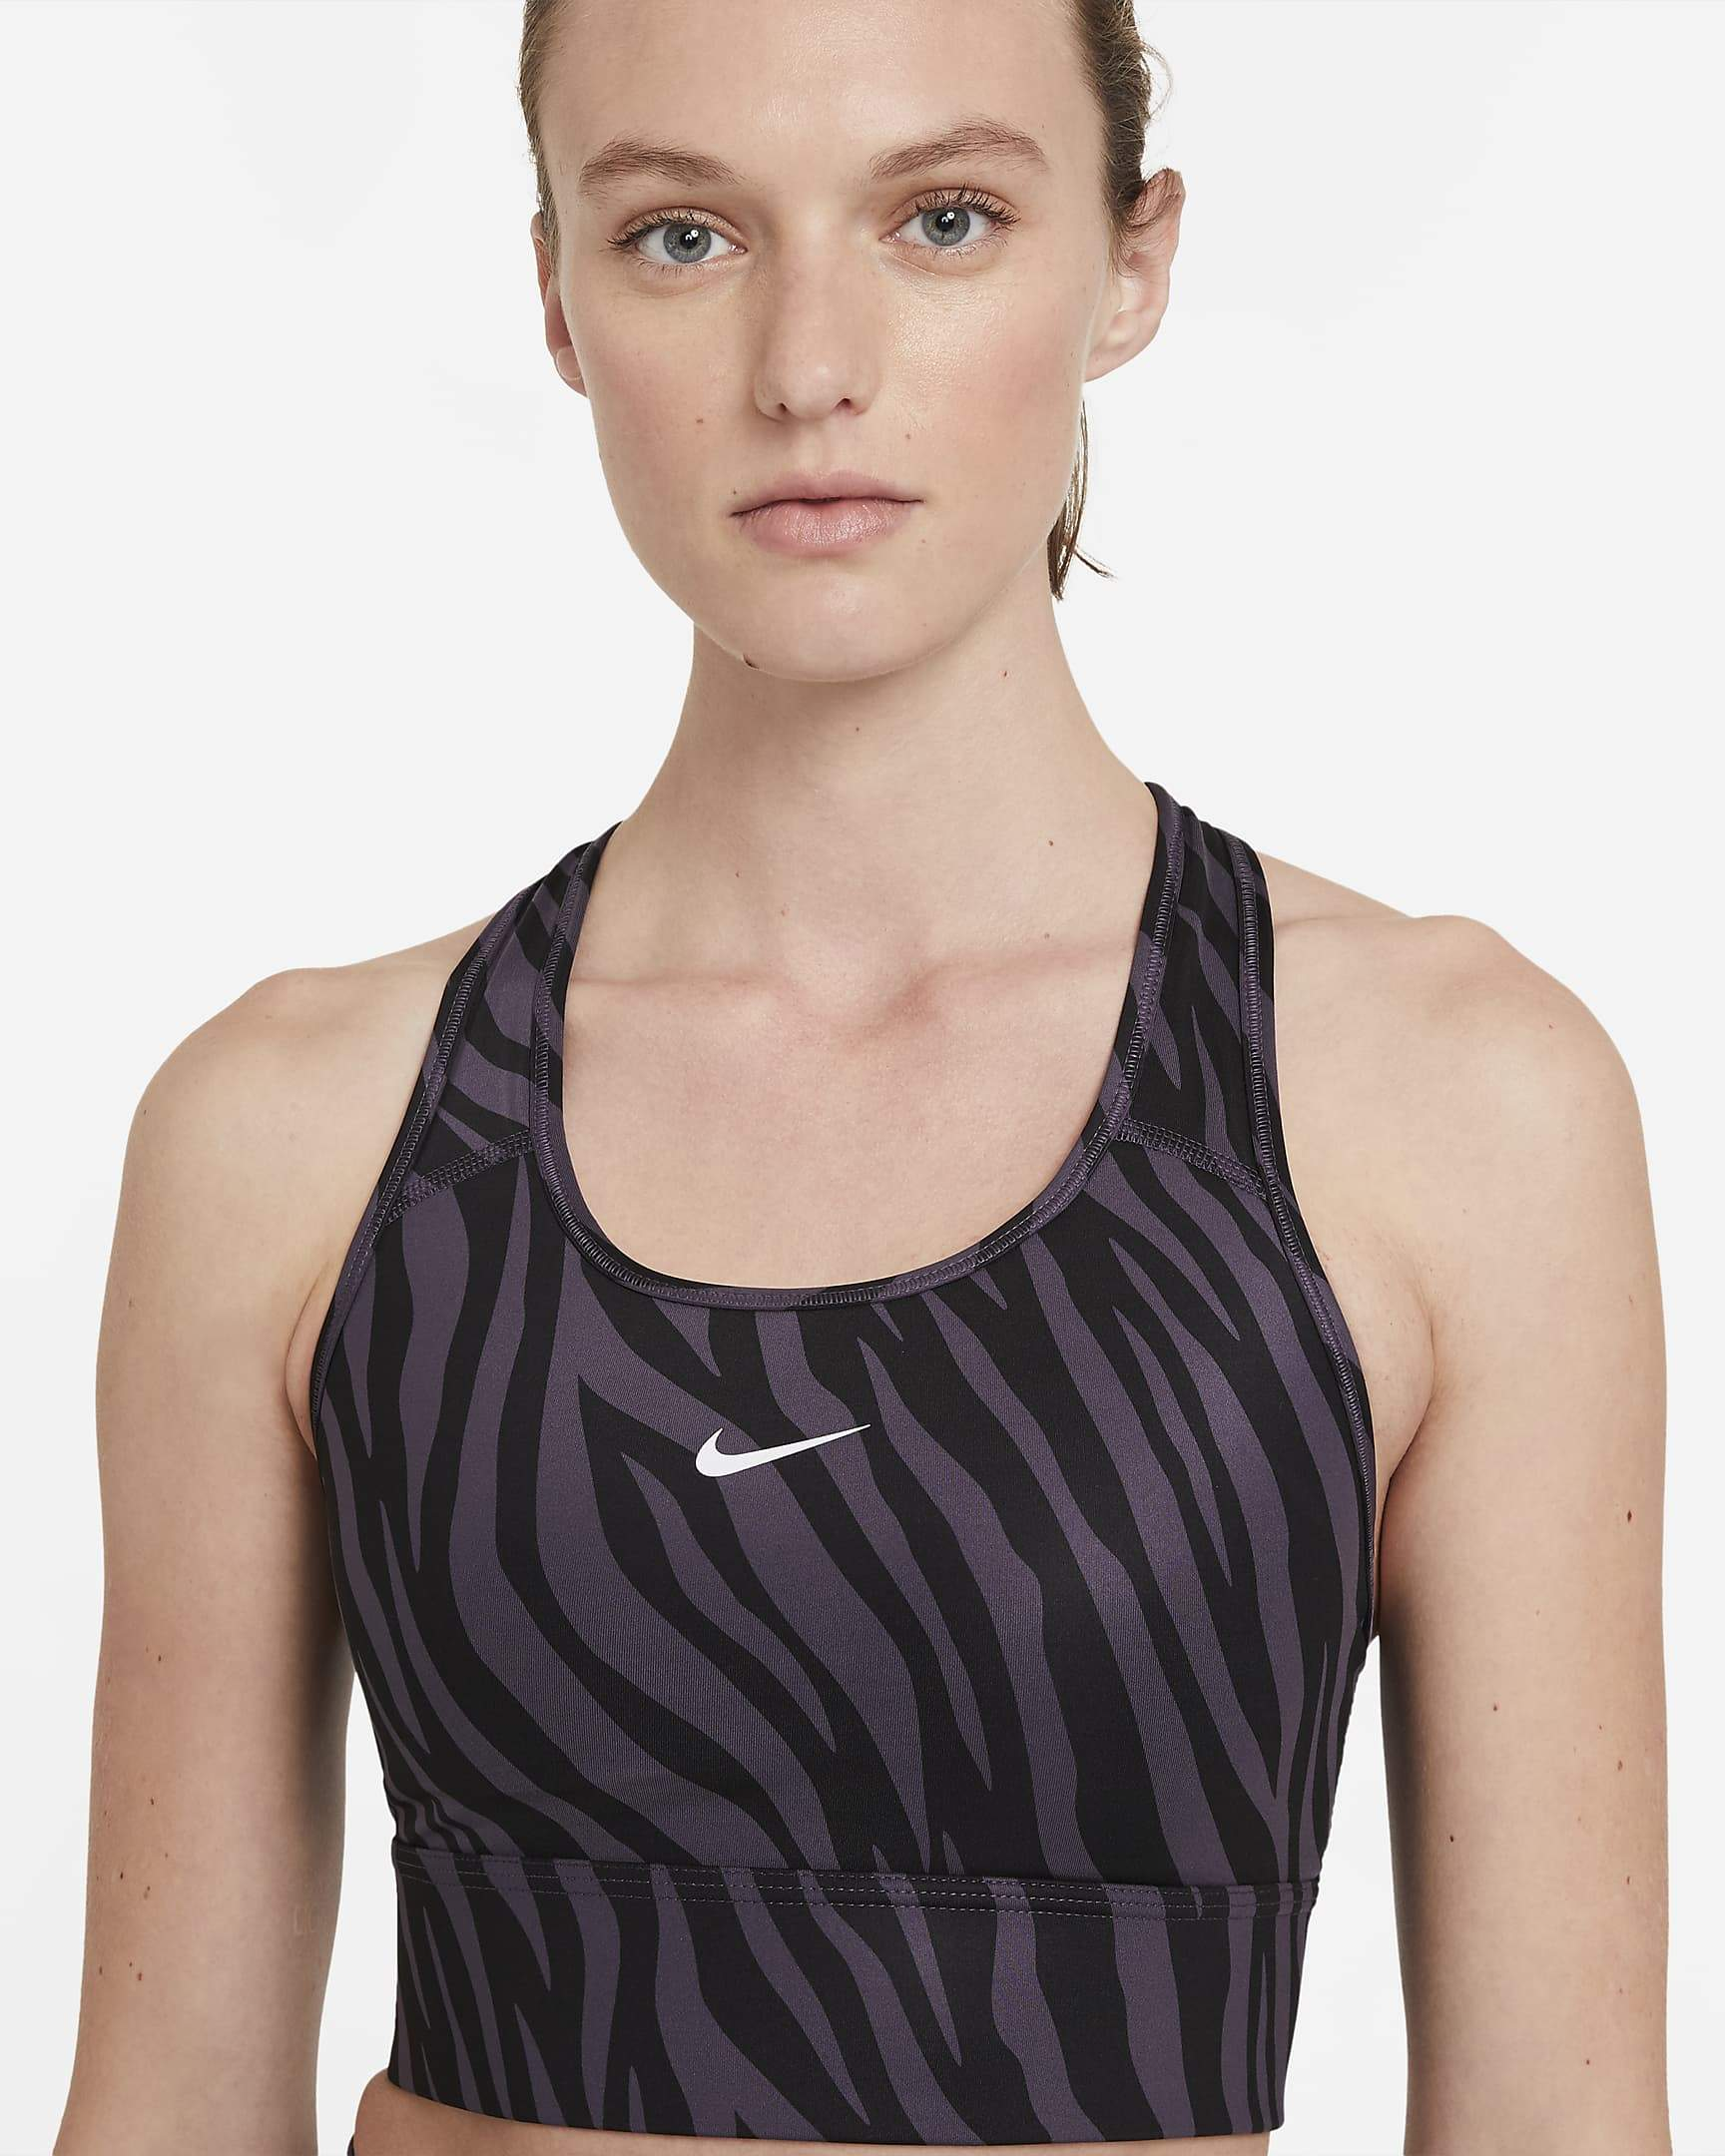 Nike Womens Dri-Fit Swoosh Icon Clash Sports Bra - Dark Raisin/White SP-ApparelBras-Womens Nike